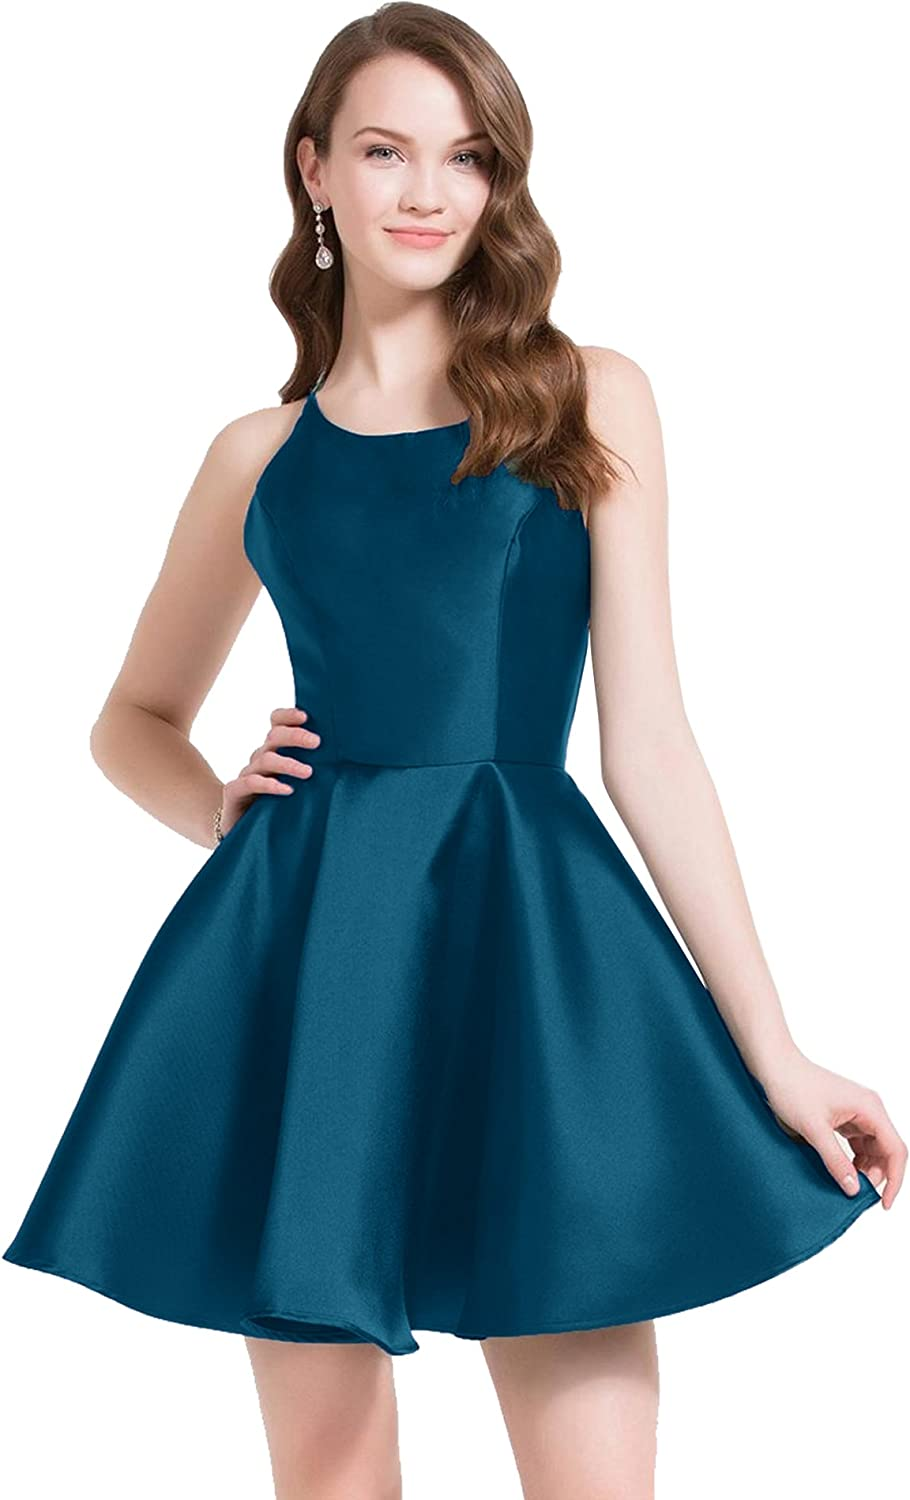 Beauty Bridal Womens Satin Homecoming Dresses Short Prom with Pockets 2018 Evening